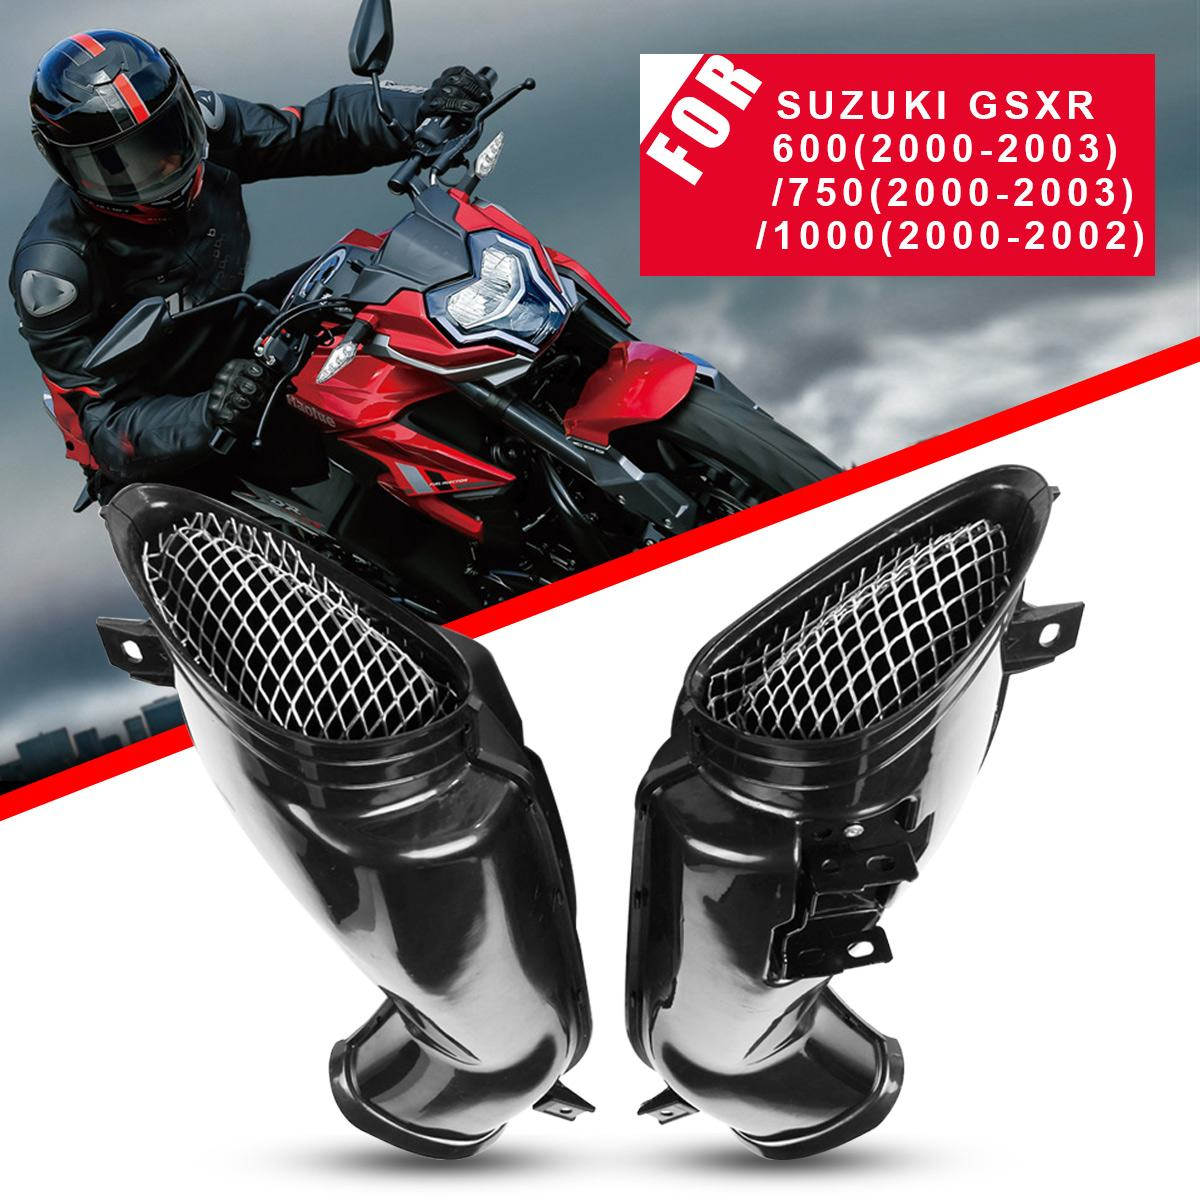 1 Pair Motorcycle Air Intake Tube Duct Cover Fairing For UZUKI /GSXR 600/750/1000 2000-2003 Motorcycle Accessories